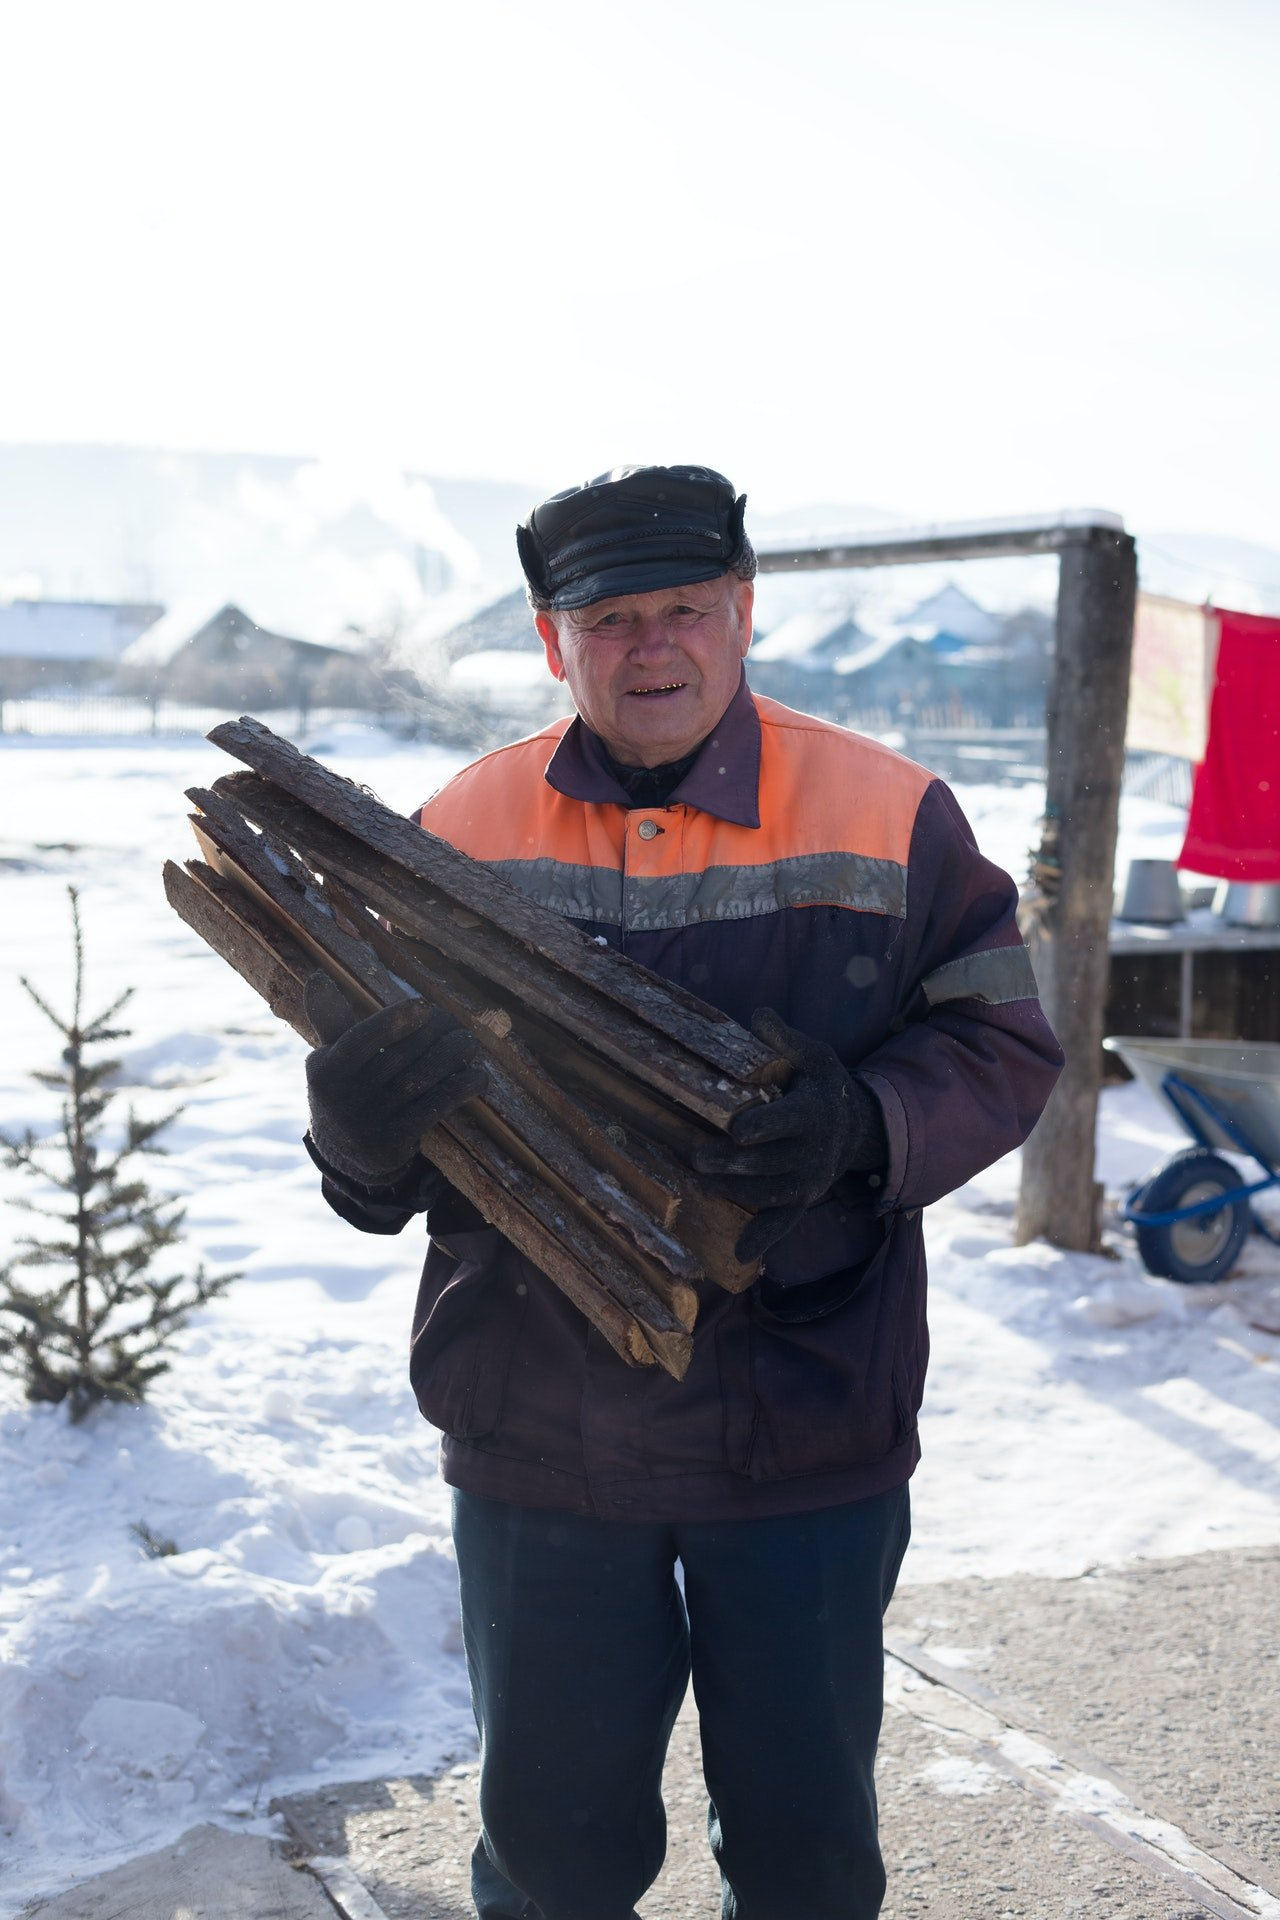 Old man carrying chopped wood   Photo: Pexels